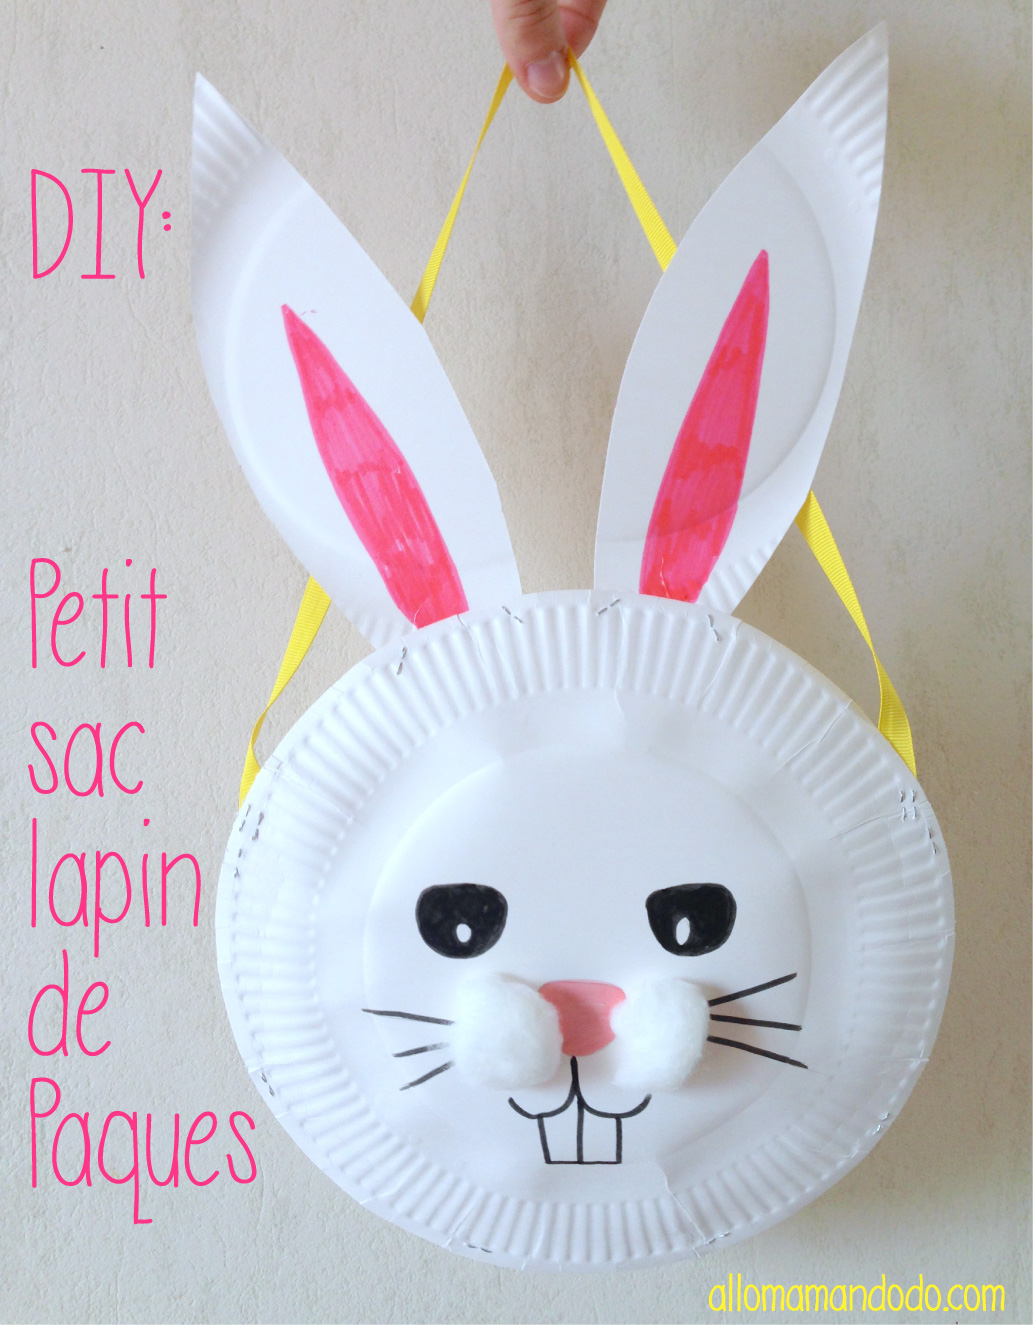 diy petit sac lapin de p ques avec des assiettes en. Black Bedroom Furniture Sets. Home Design Ideas